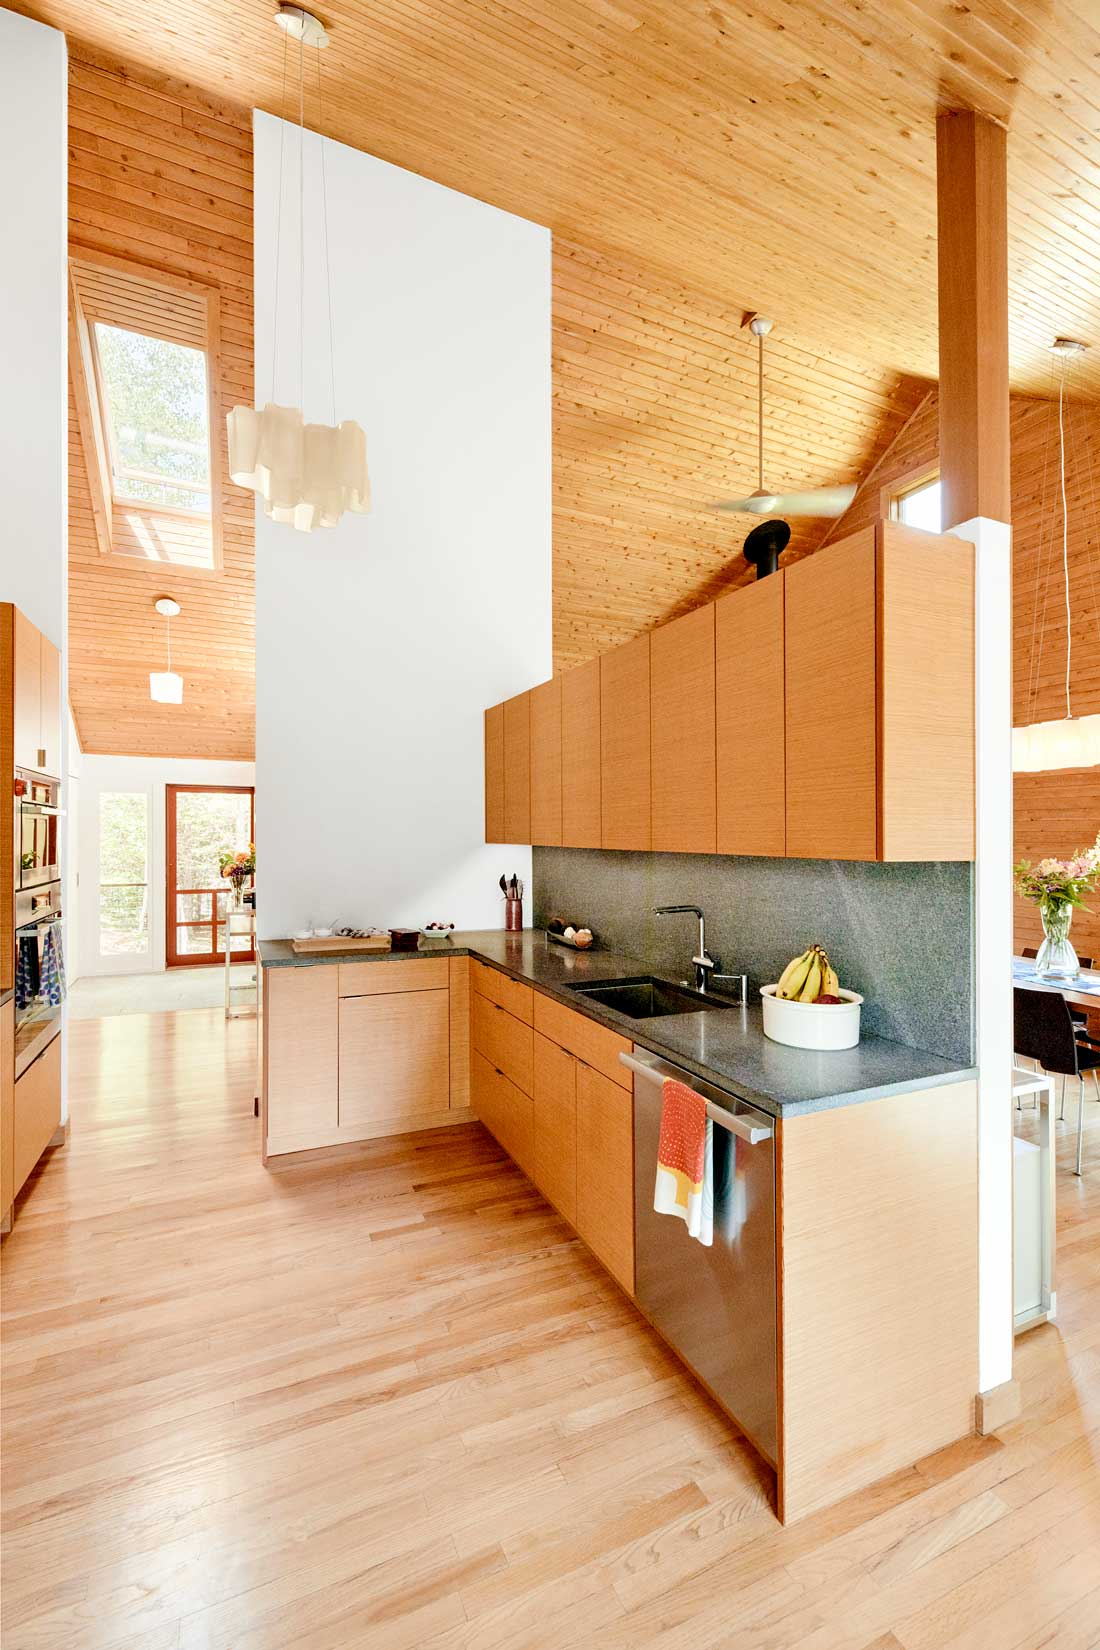 vertical-grain fir contrasts with a Morning Mist granite countertop and backsplash from Freshwater Stone and the home's knotty-cedar paneling